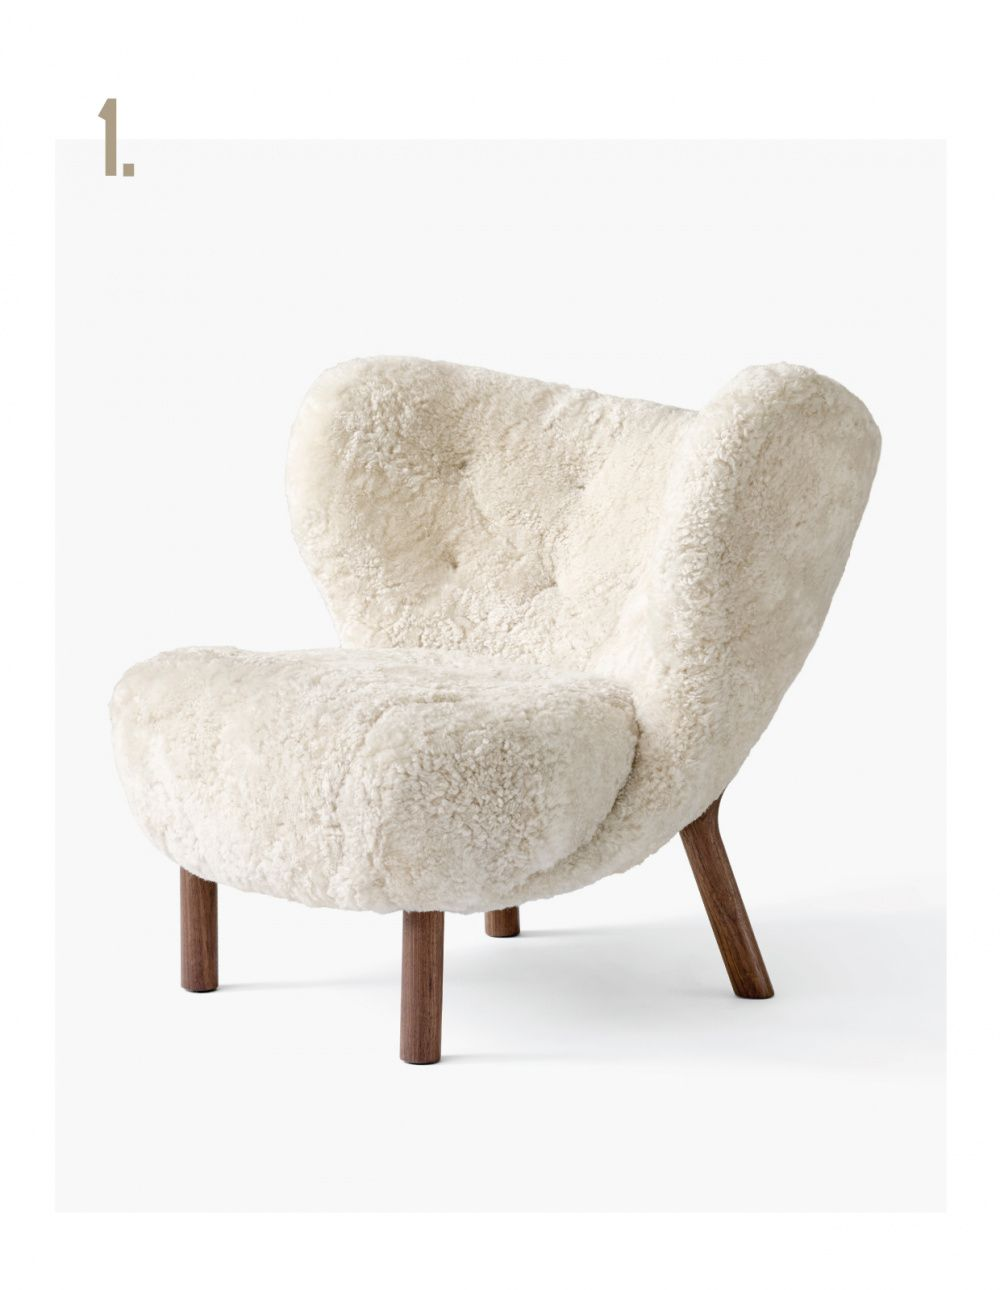 16 Of The Best Designer Statement Chairs In 2020 Lounge Chair Design Statement Chairs Furniture